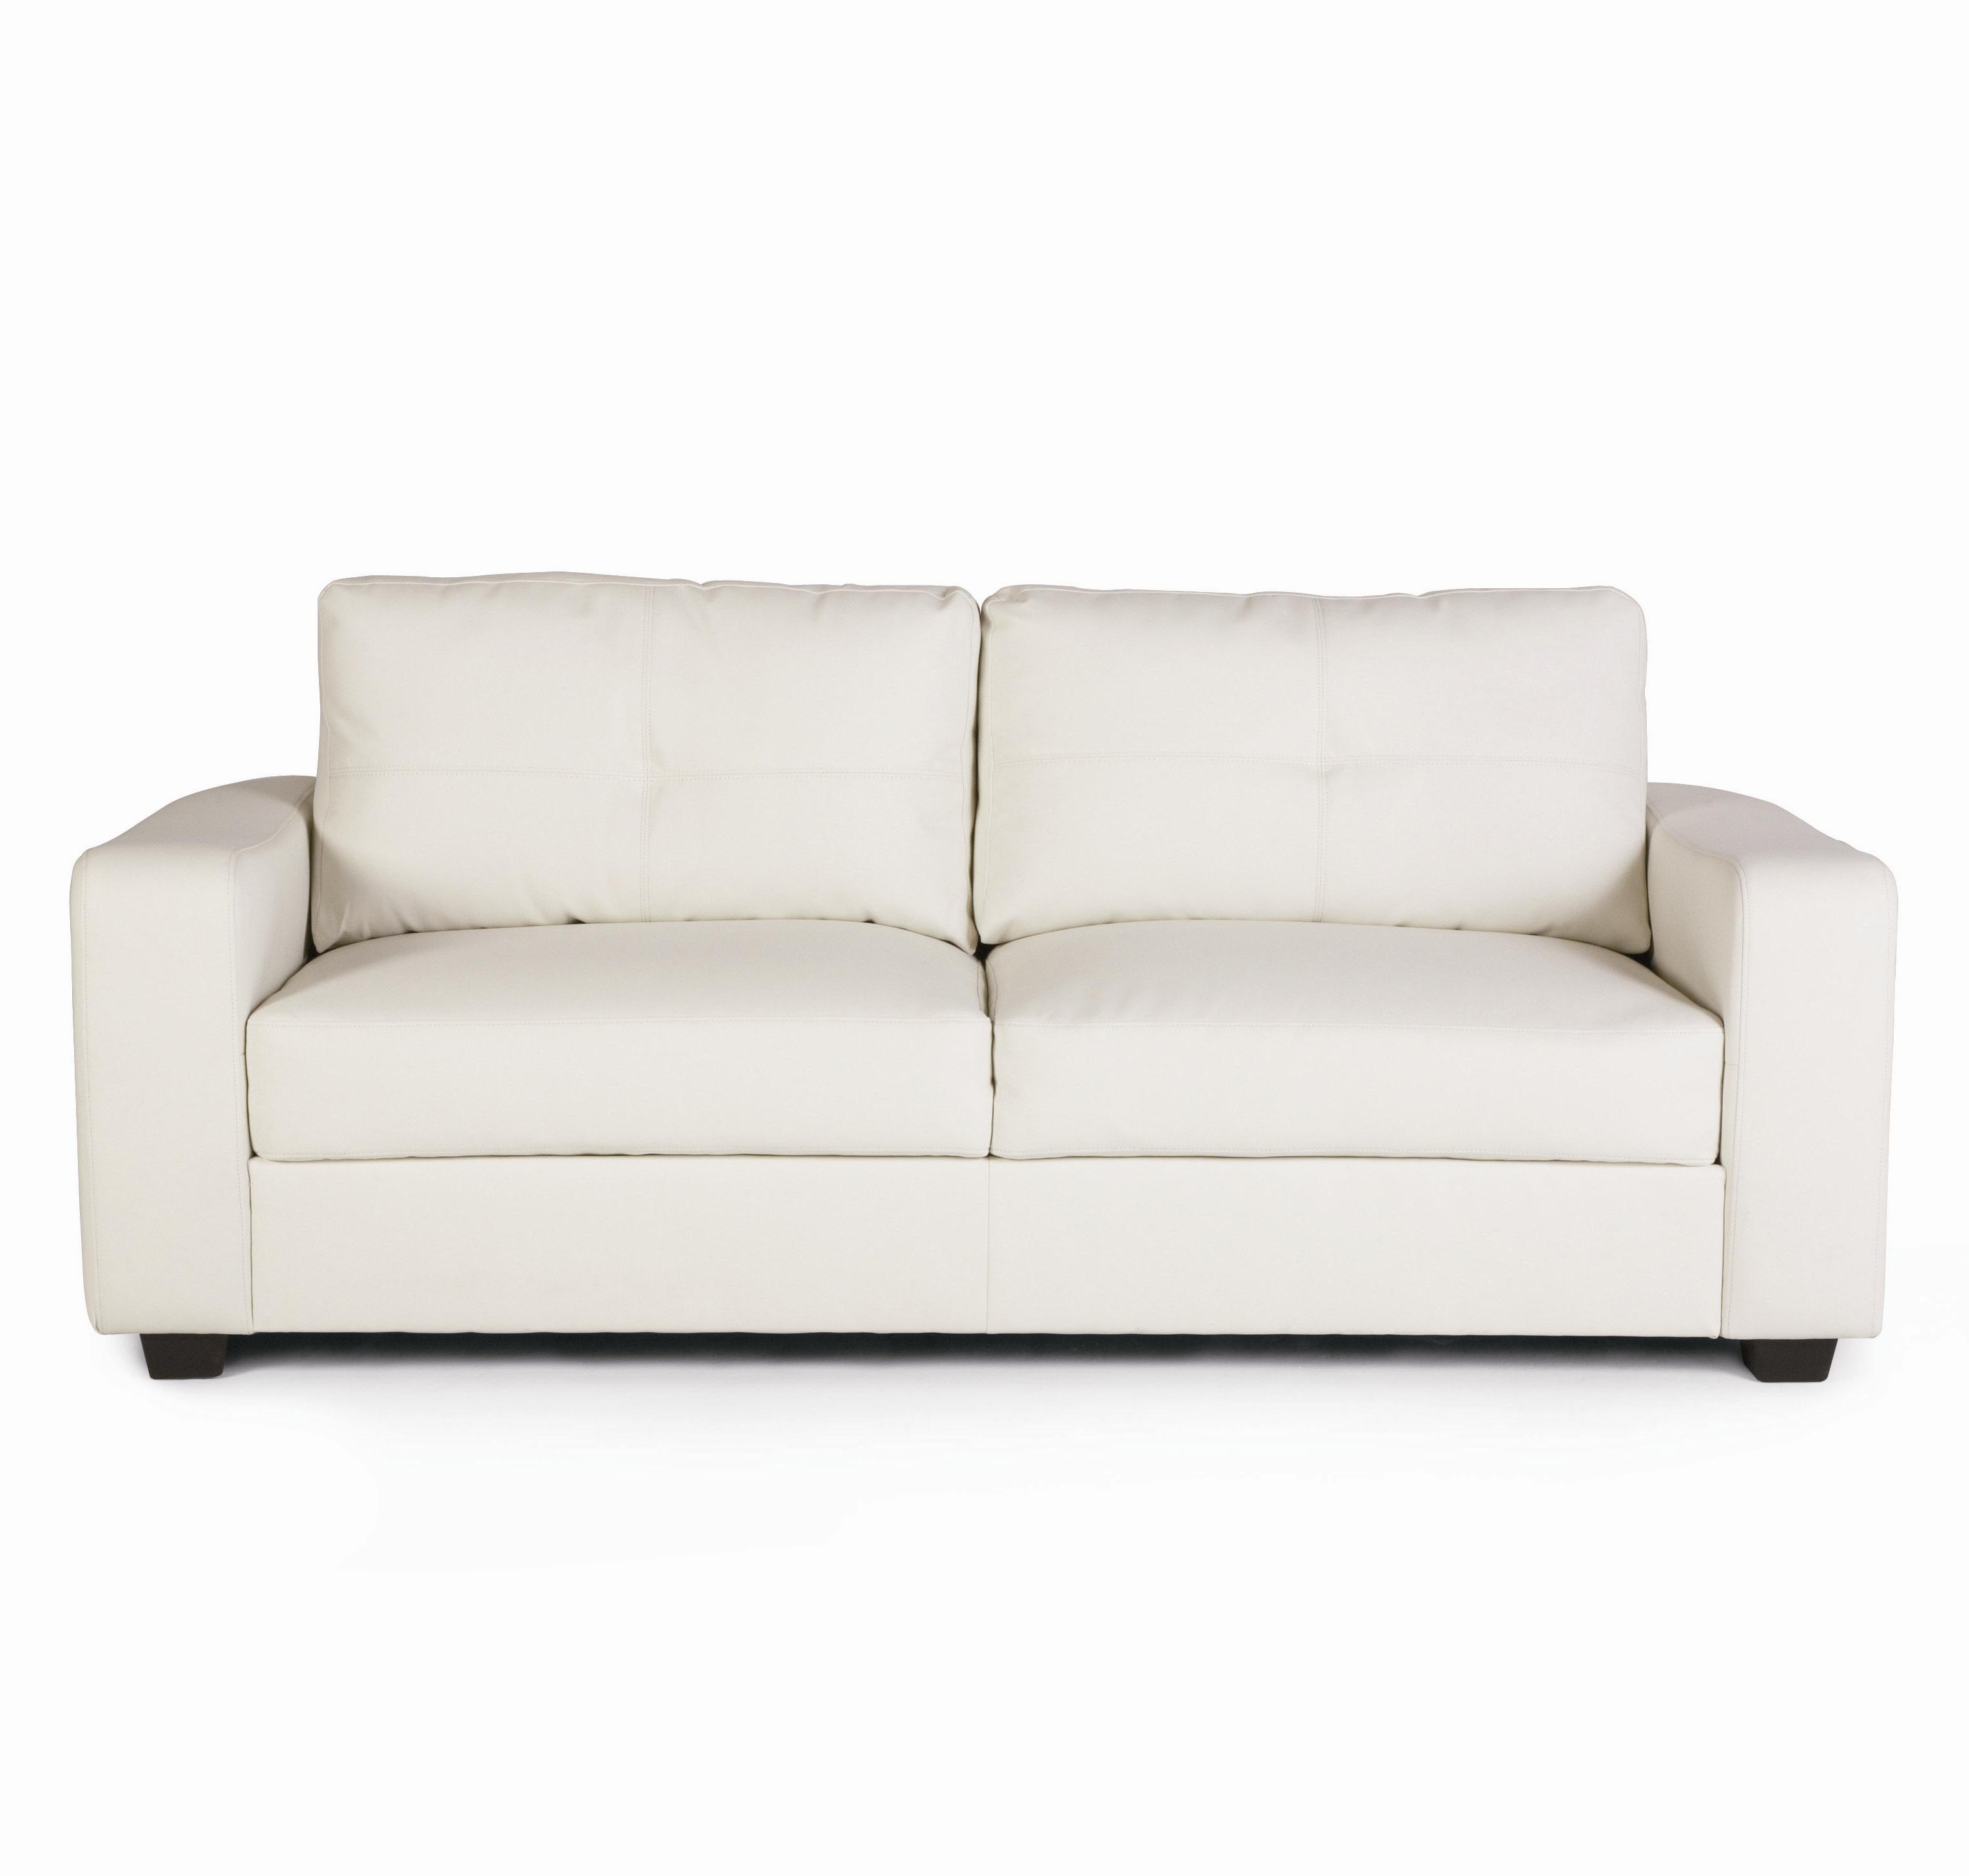 lovely white sofa images 41 with additional sofas and couches ideas with white MBUIFTW